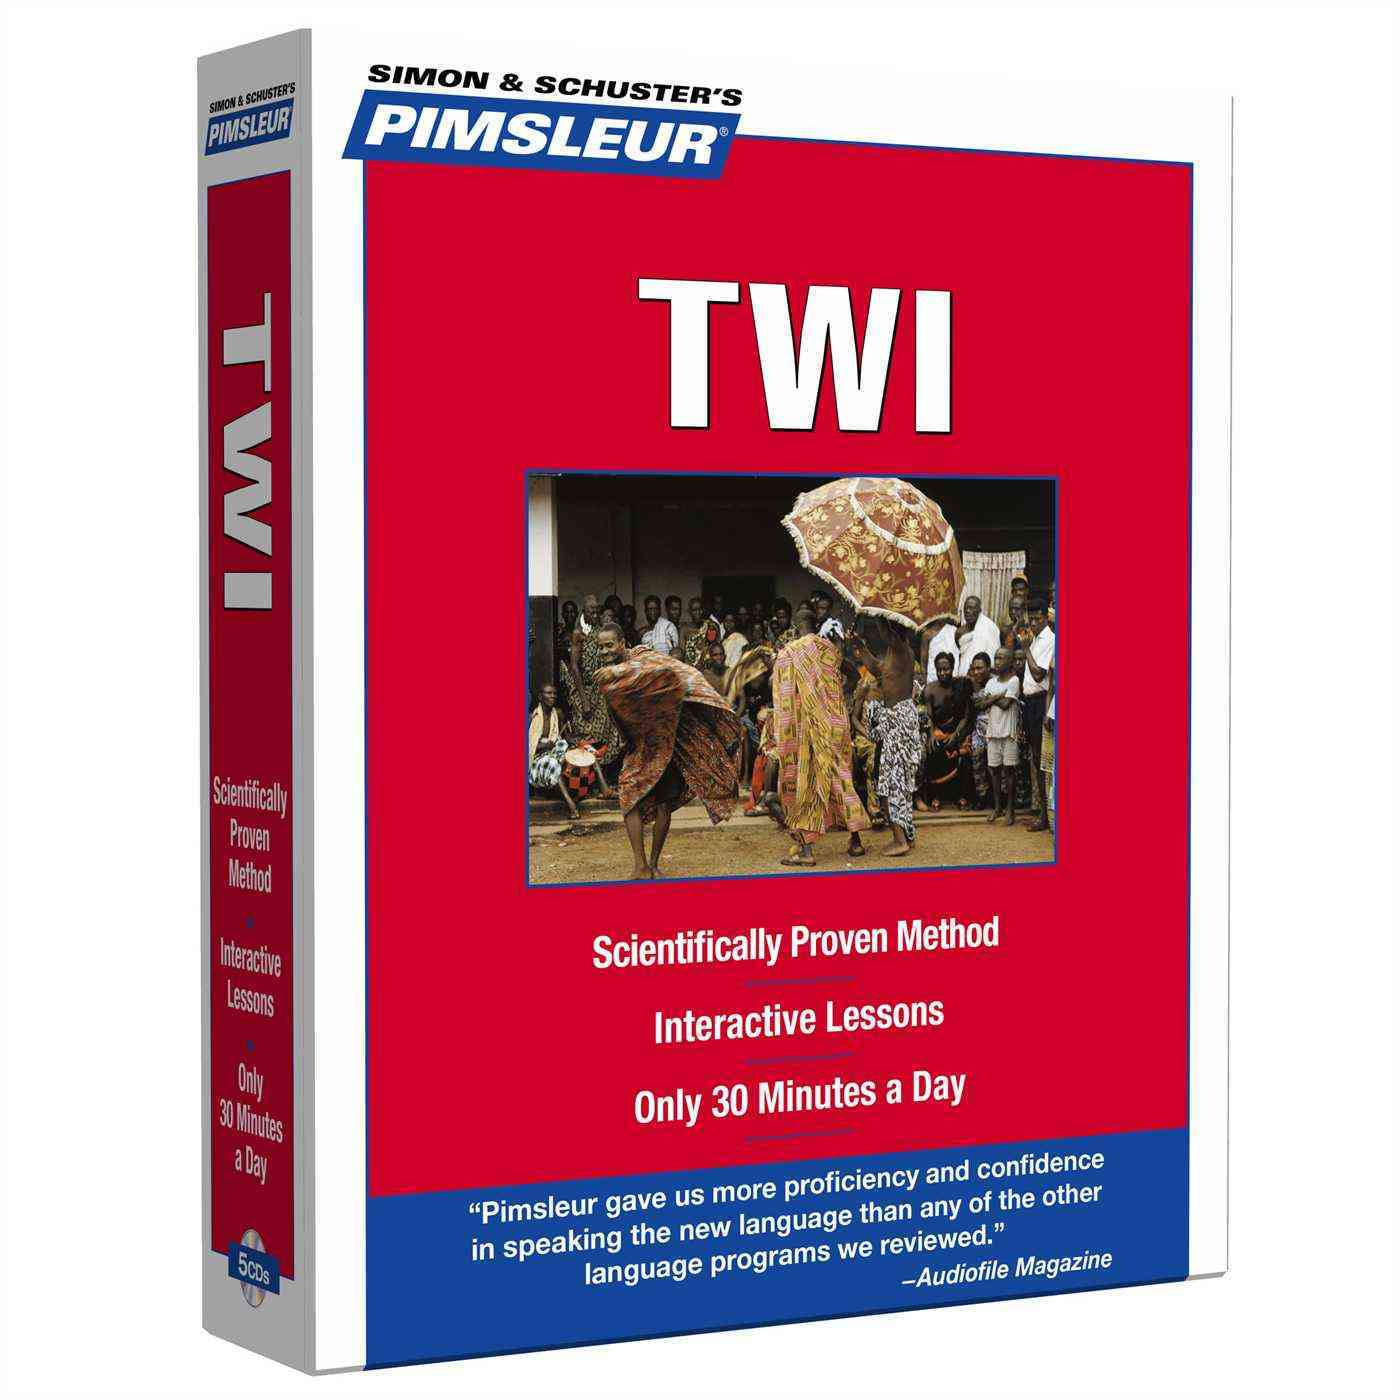 [CD] Pimsleur Twi By Pimsleur (COR)